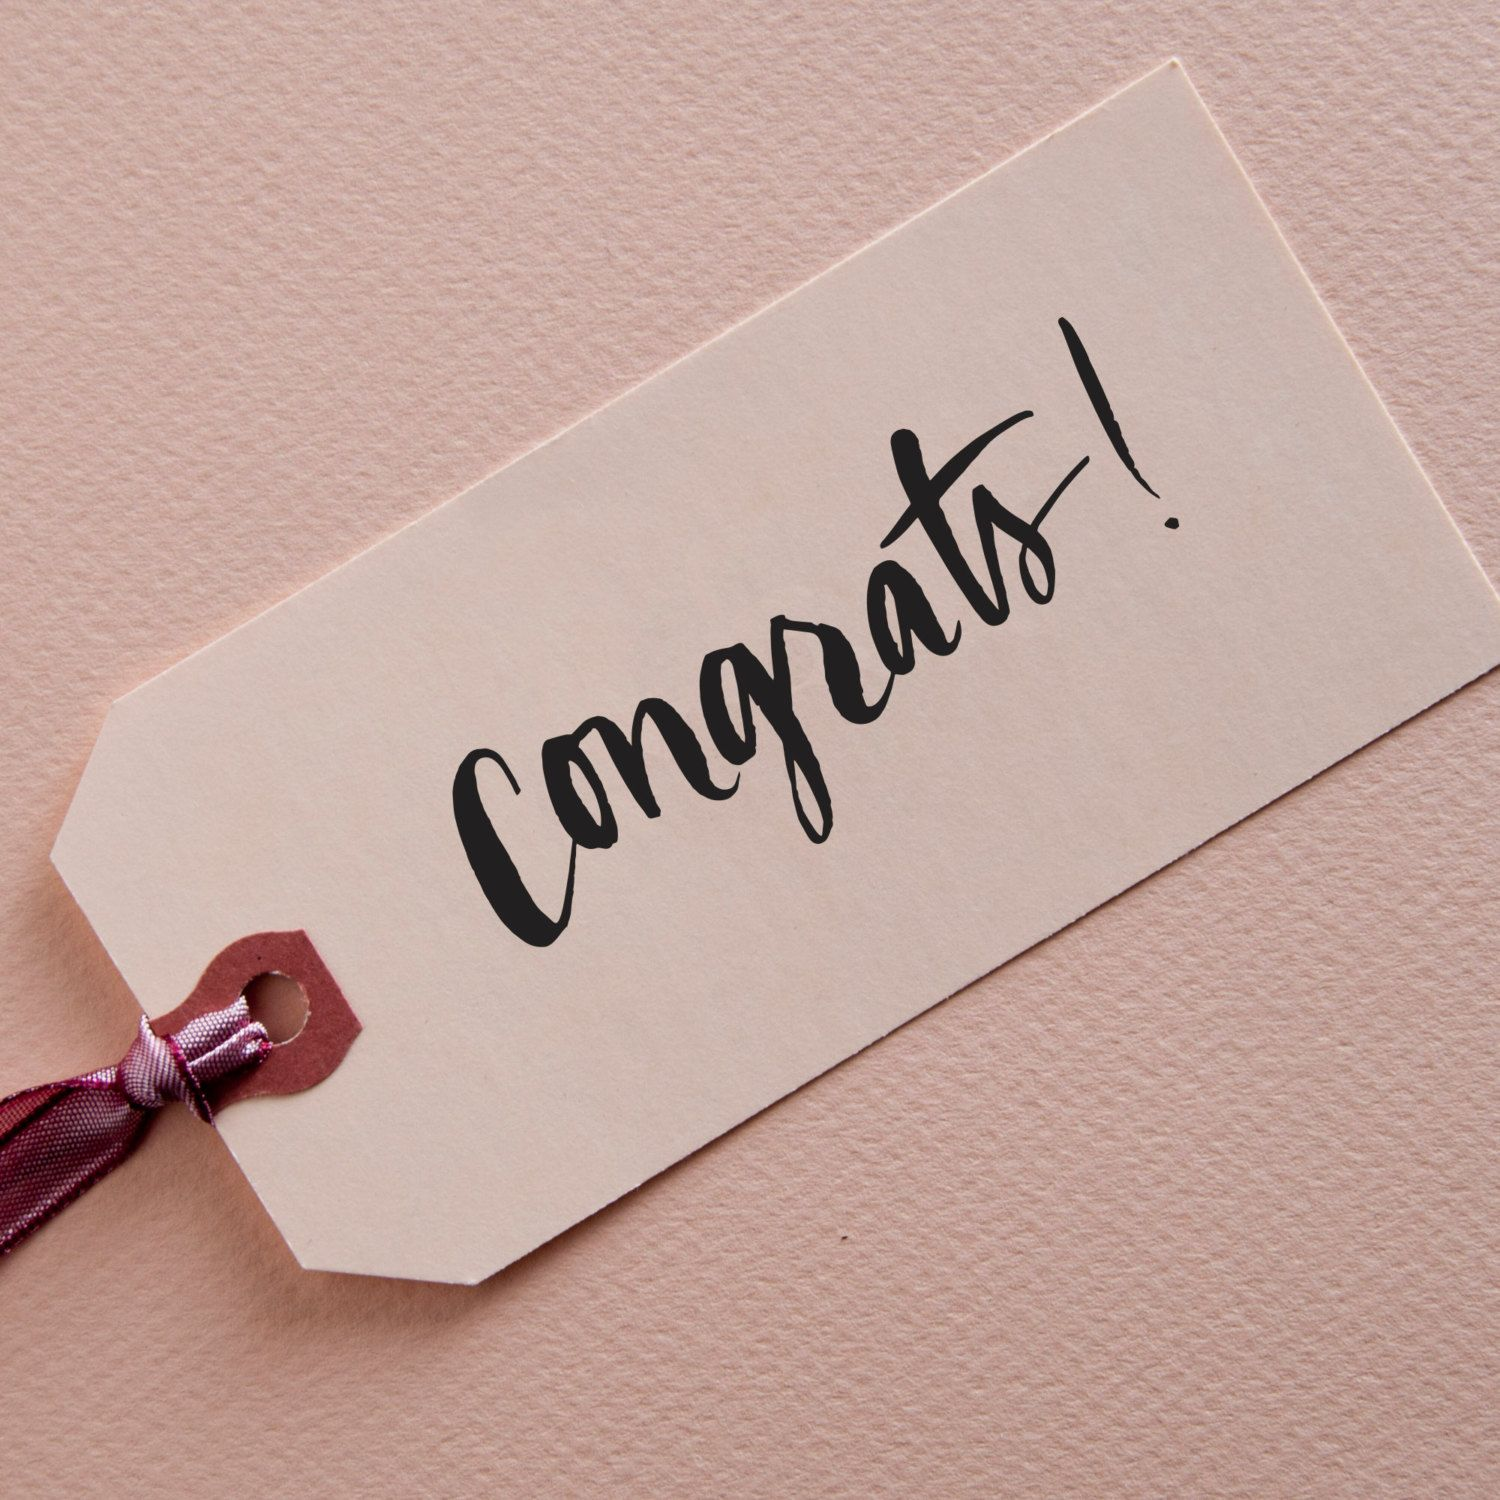 Congrats Brush Lettering Stamp By Kmcalligraphy On Etsy